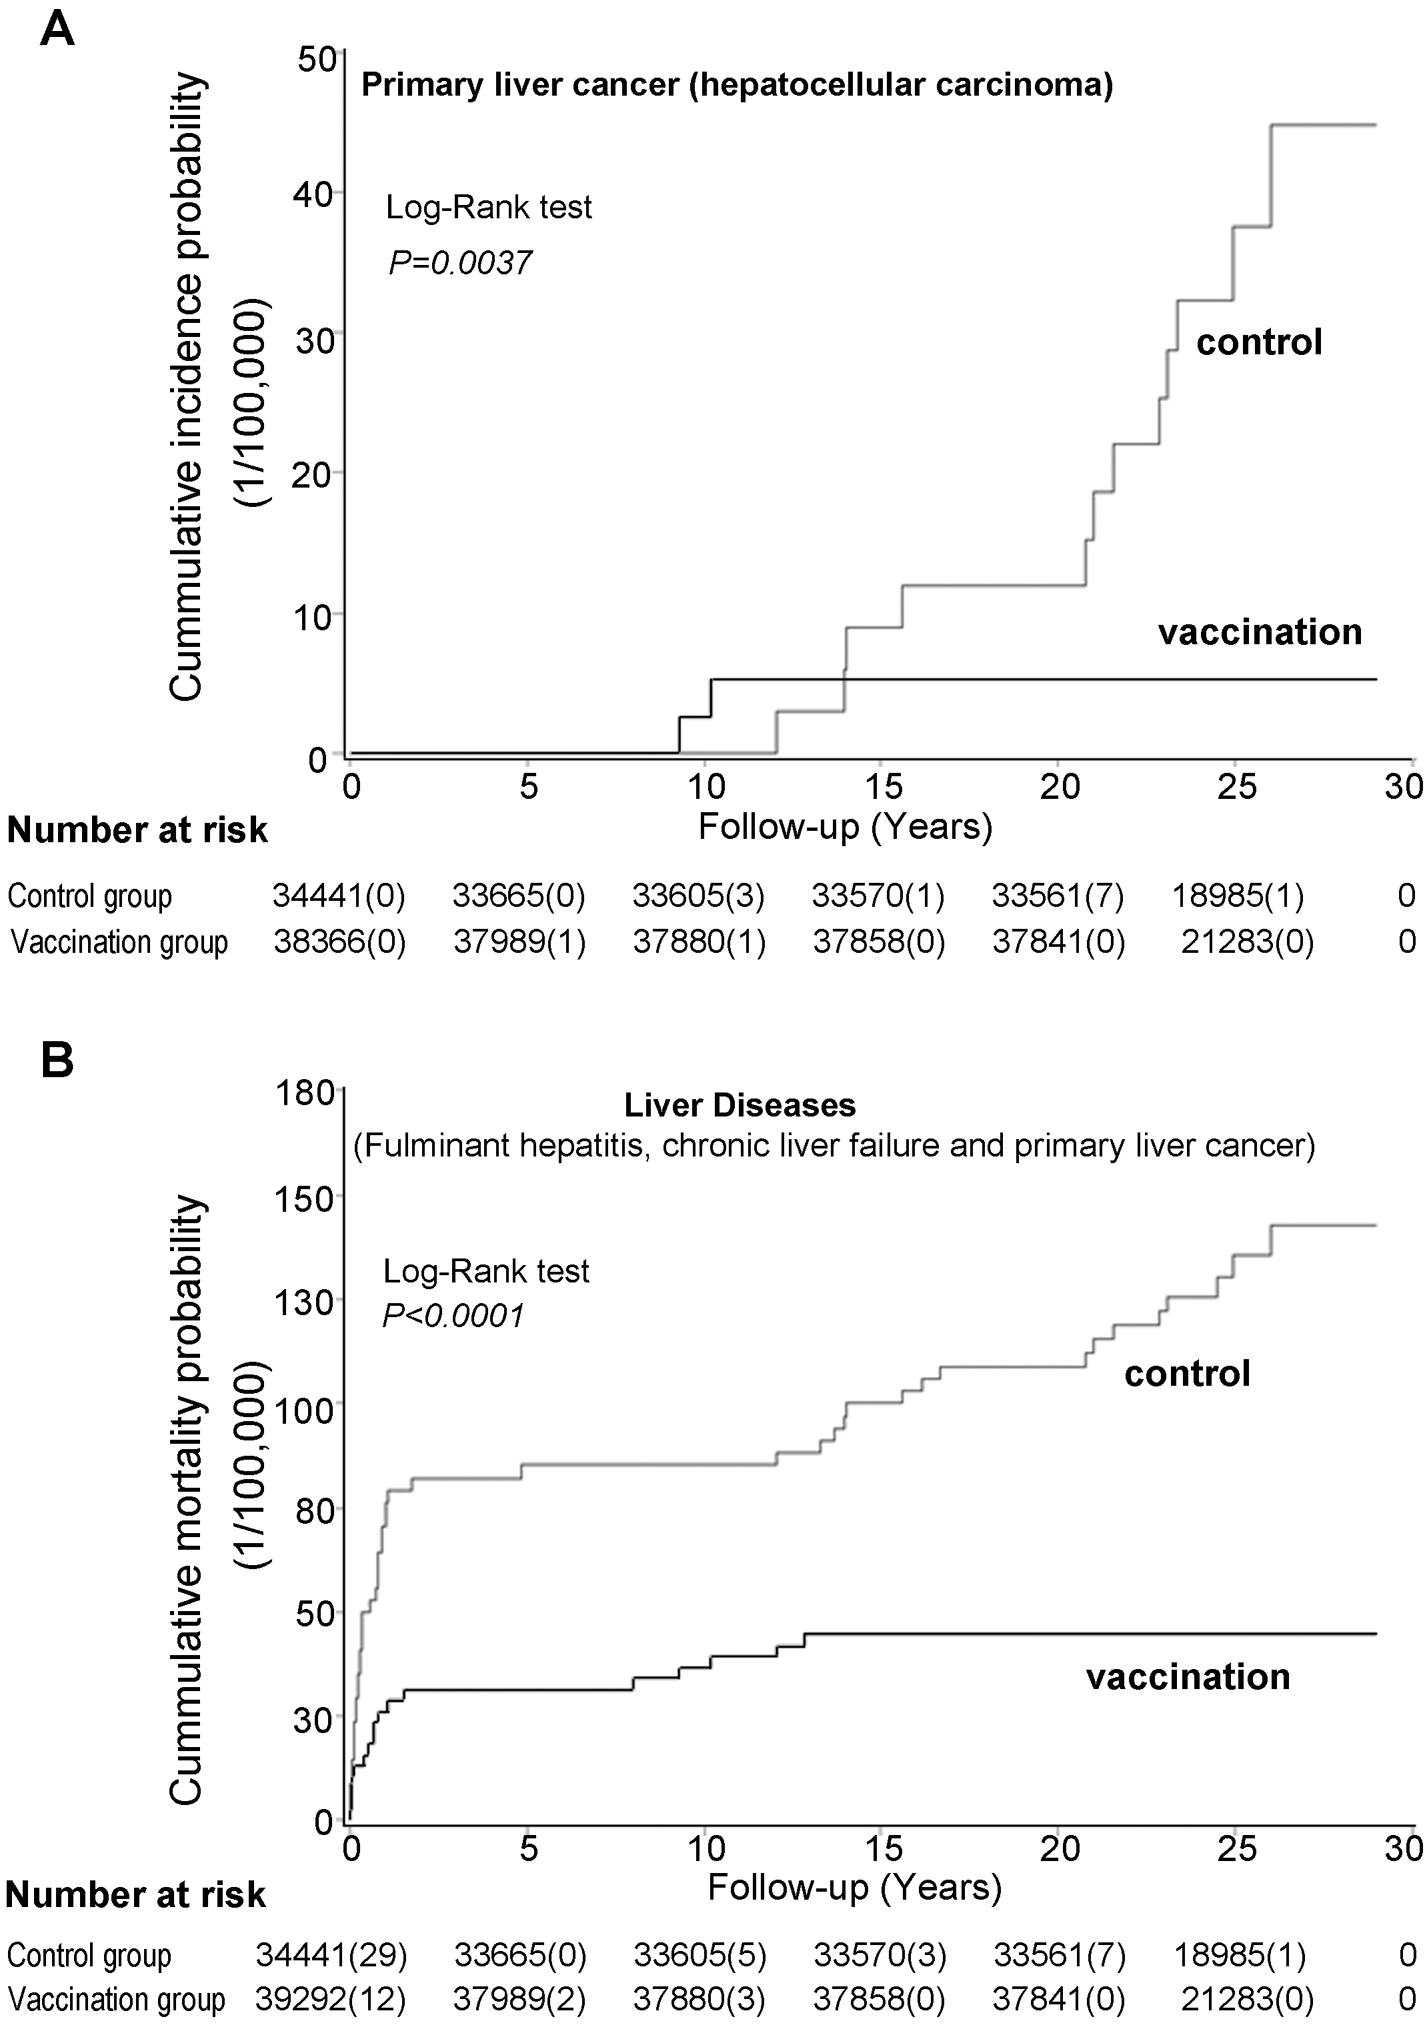 Cumulative incidence probability of primary liver cancer (A) and cumulative mortality probability of liver diseases (B) in the vaccination and control groups.